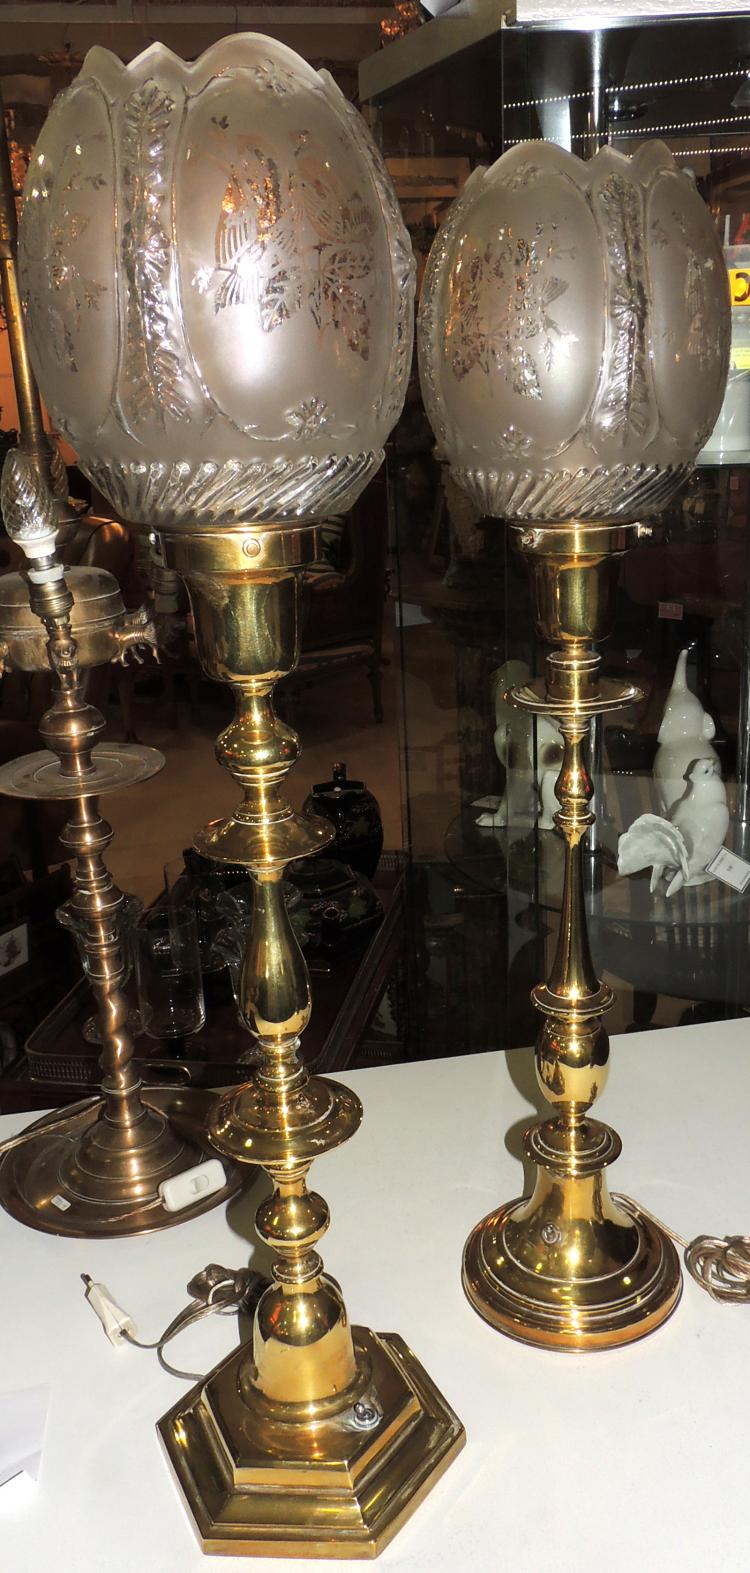 TWO TABLEWARE LAMPS, subsequently electrified in gilded bronze with glazed glass shades engraved with acid and decorated with birds.Heights: 74 and 78 cm.